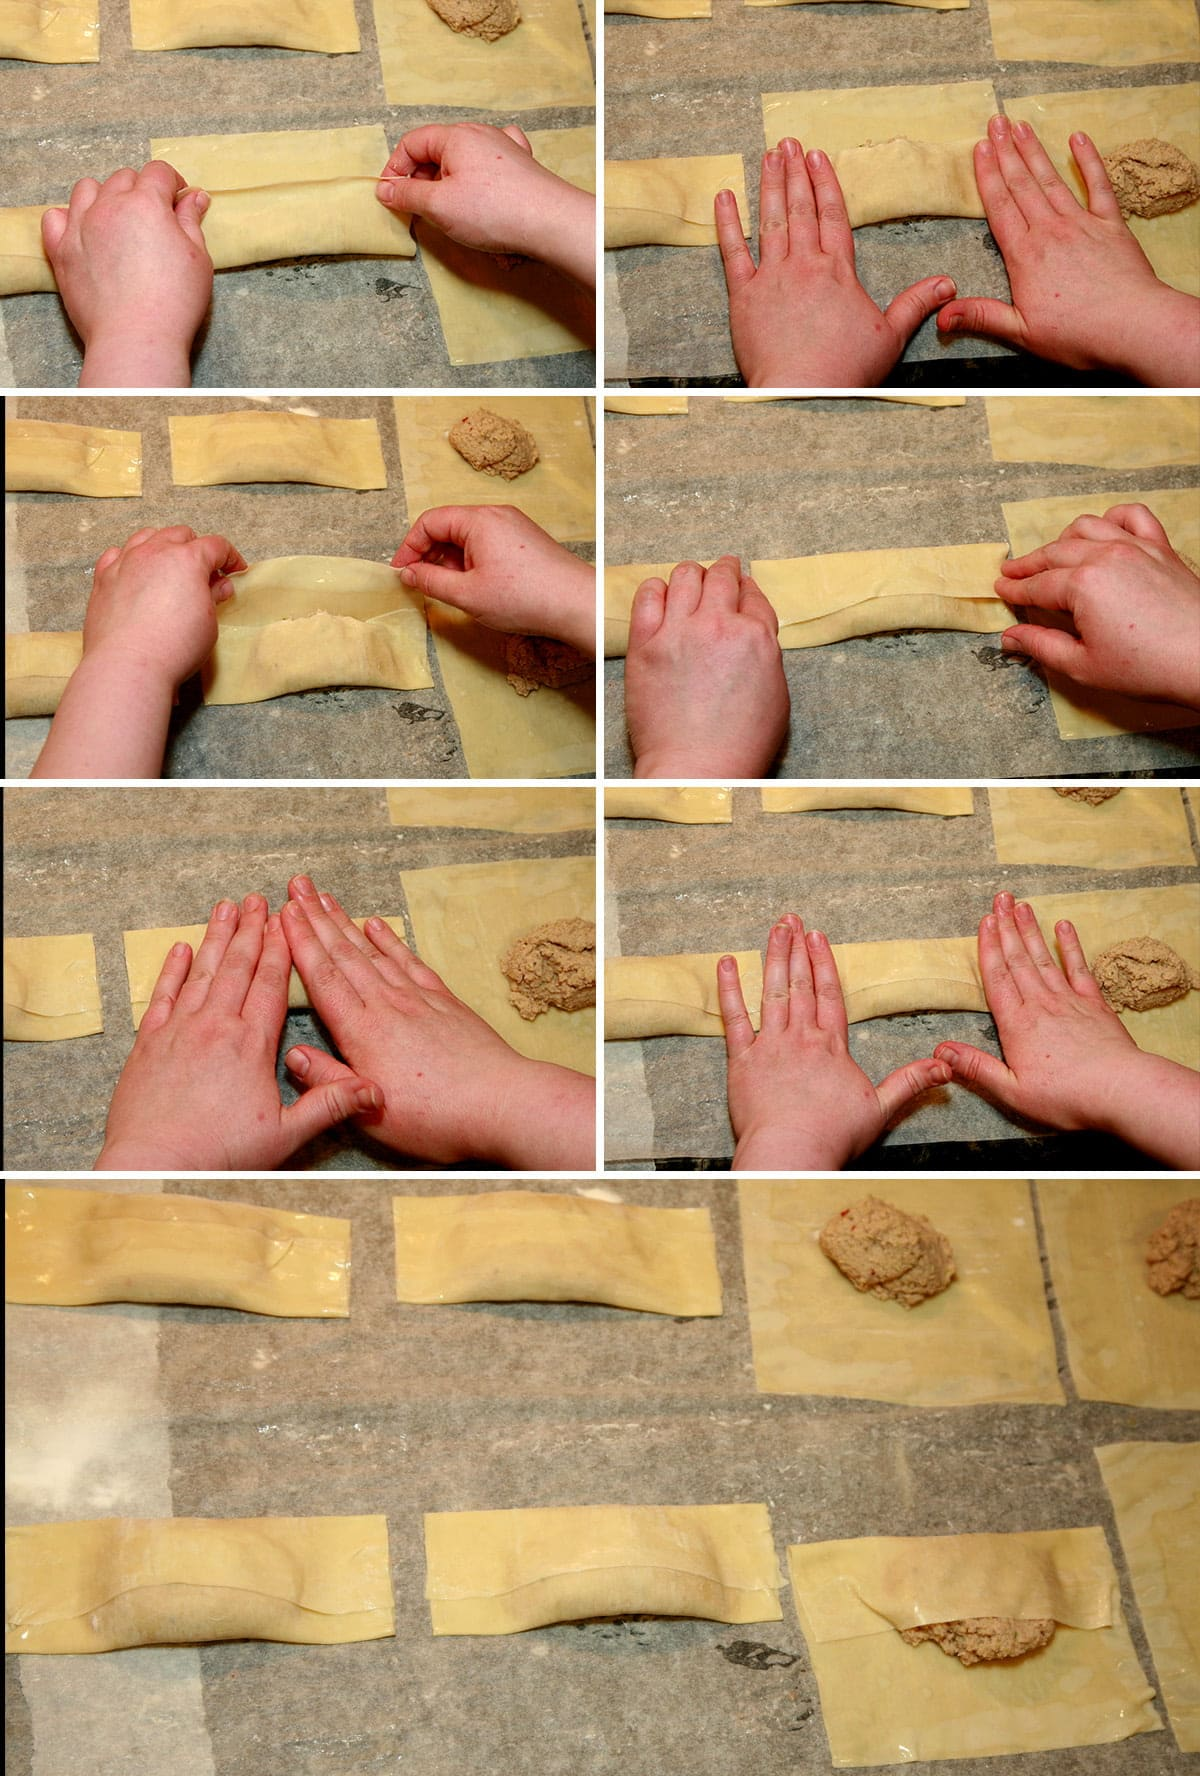 A compilation of 7 images demonstrating how to fold Halifax style egg rolls, per the instructions in the post.